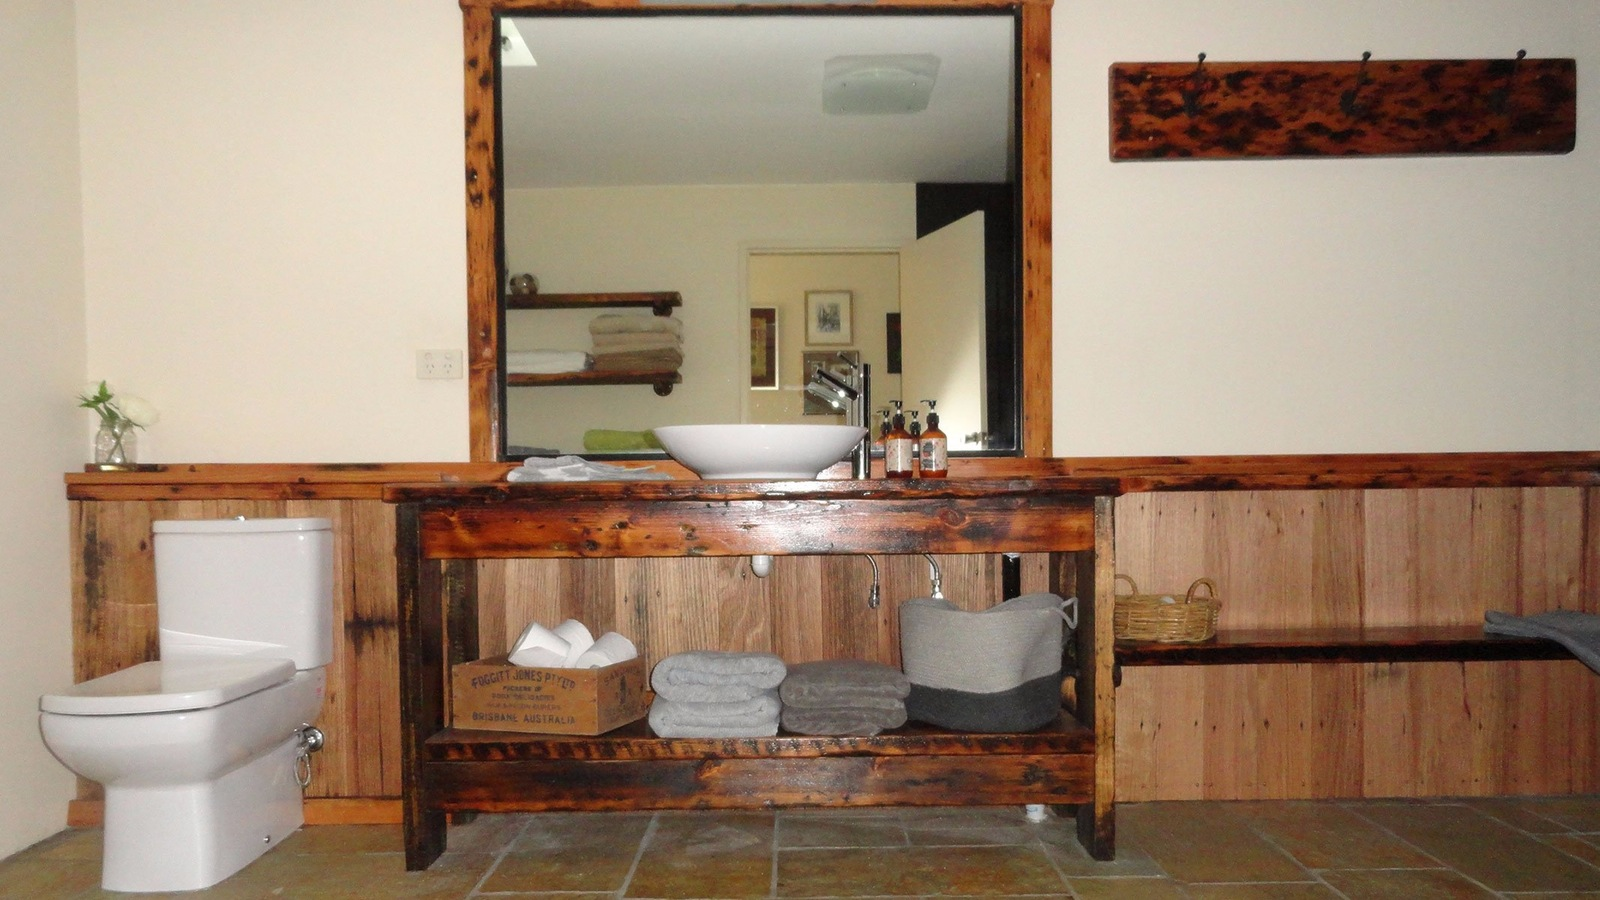 The Burrow bathroom